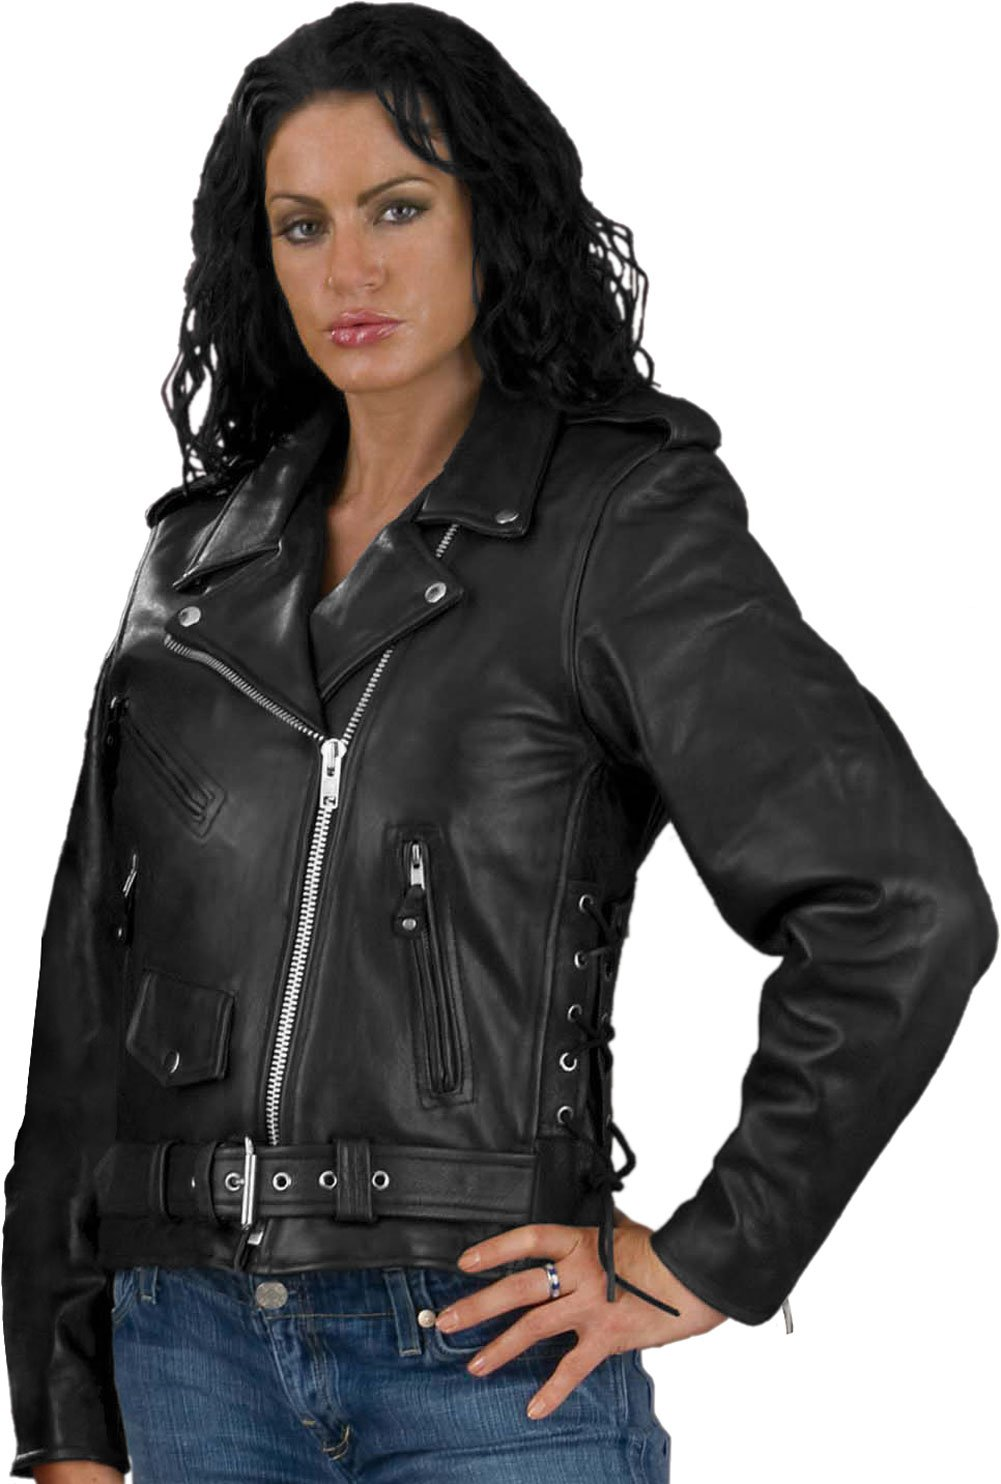 LC2700 Ladies Black Basic Classic Motorcycle Premium Leather Jacket with side laces